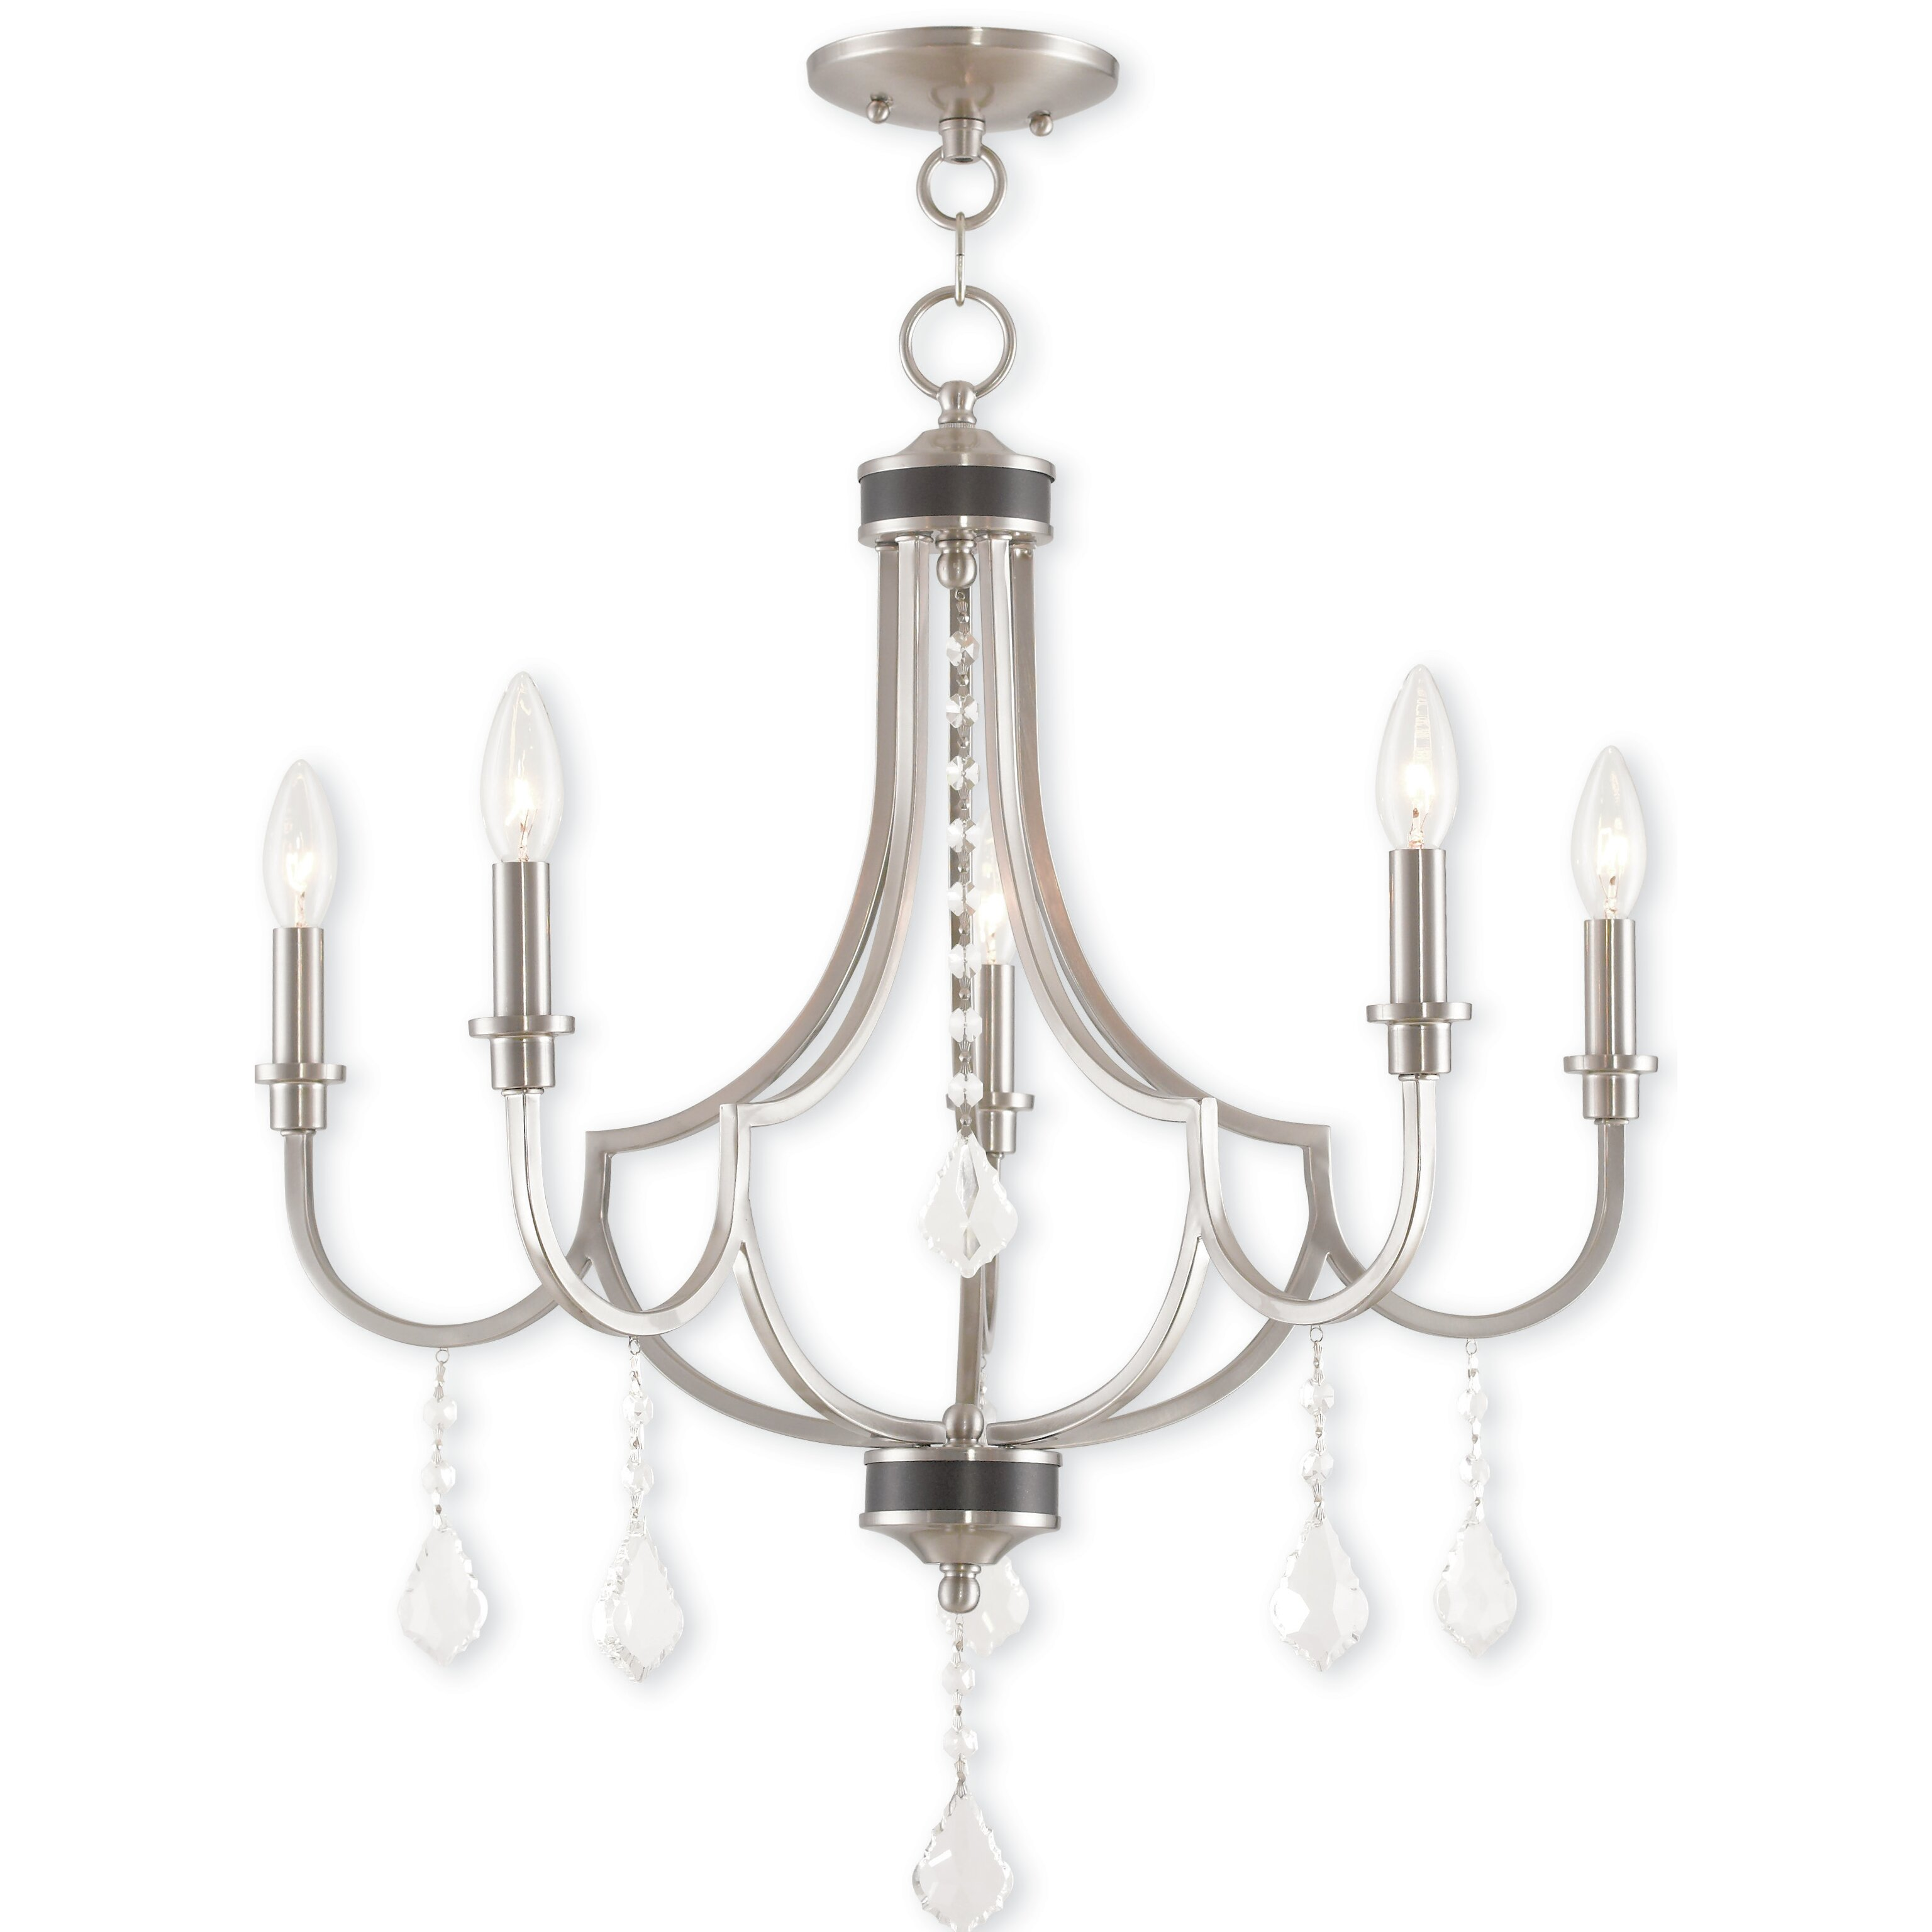 House Of Hampton Electra 5 Light Candle Style Chandelier